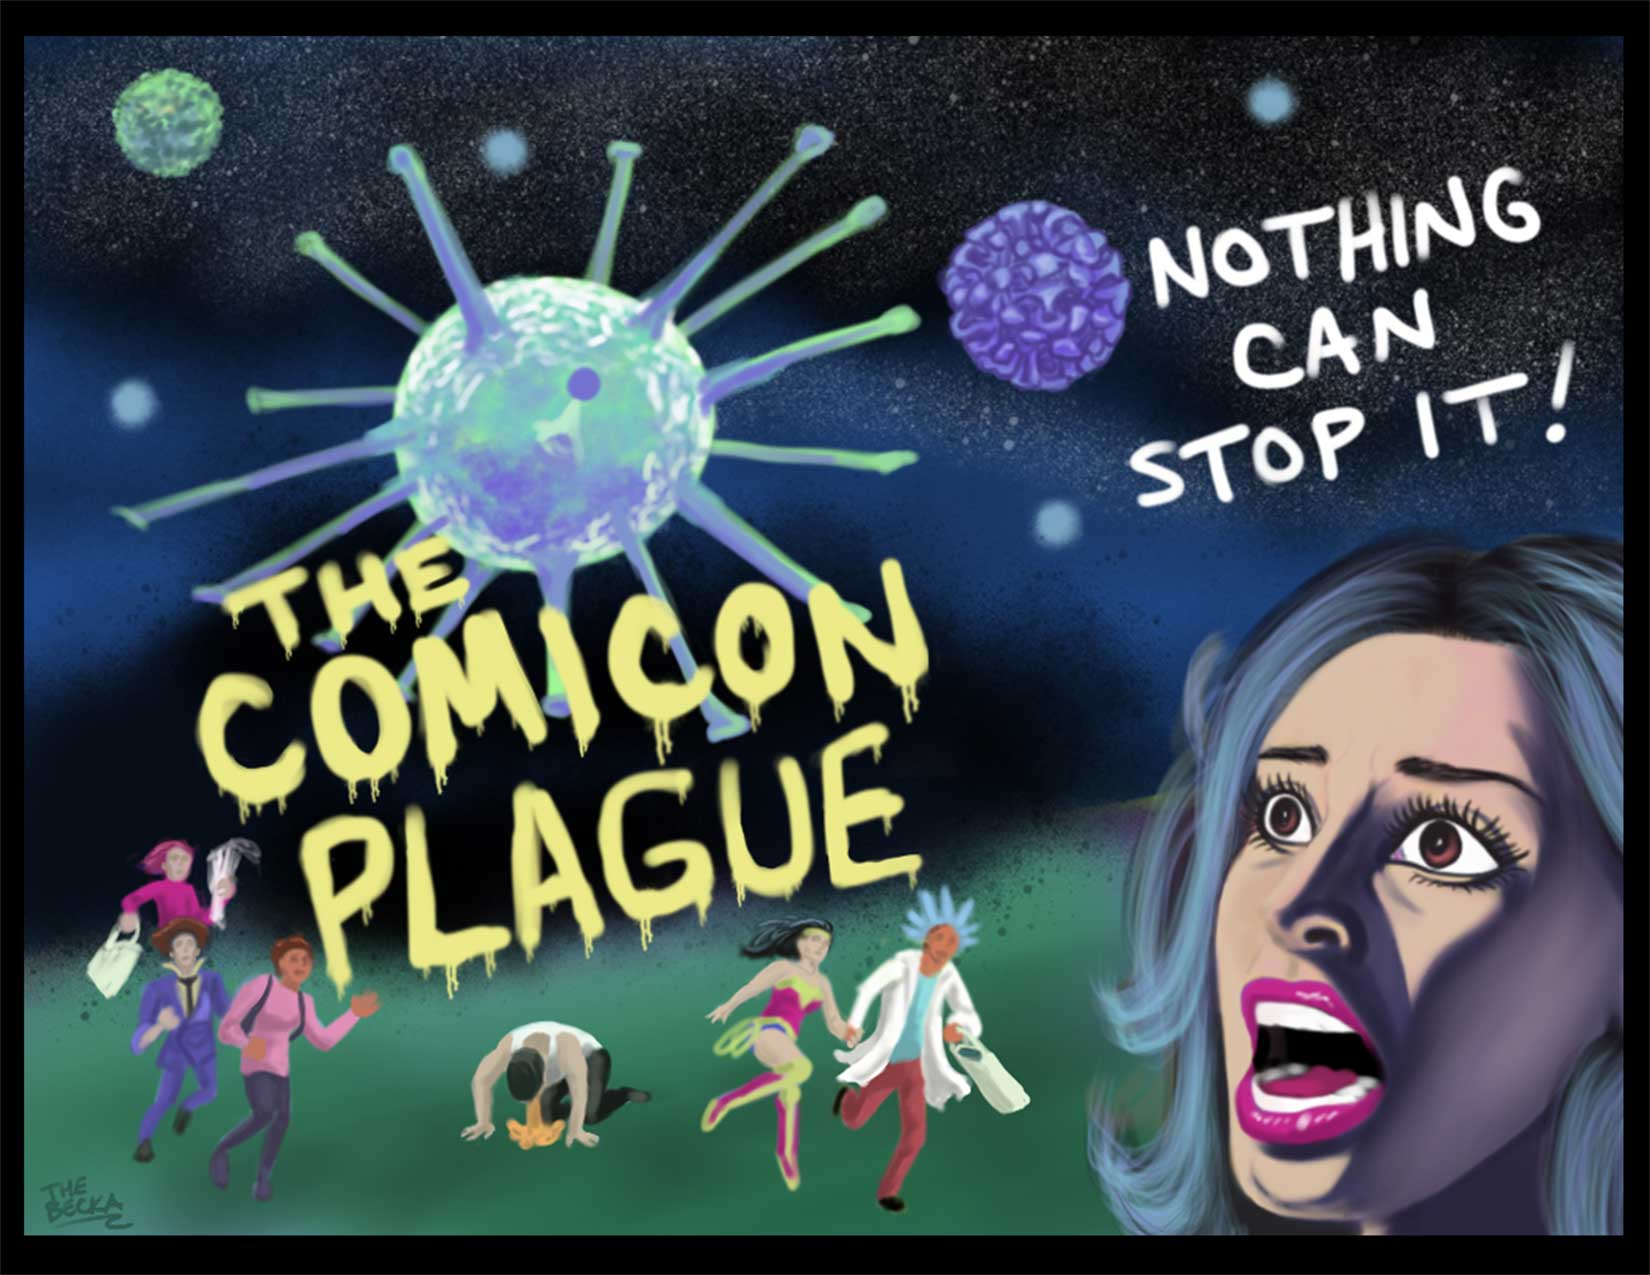 The Comicon Plague